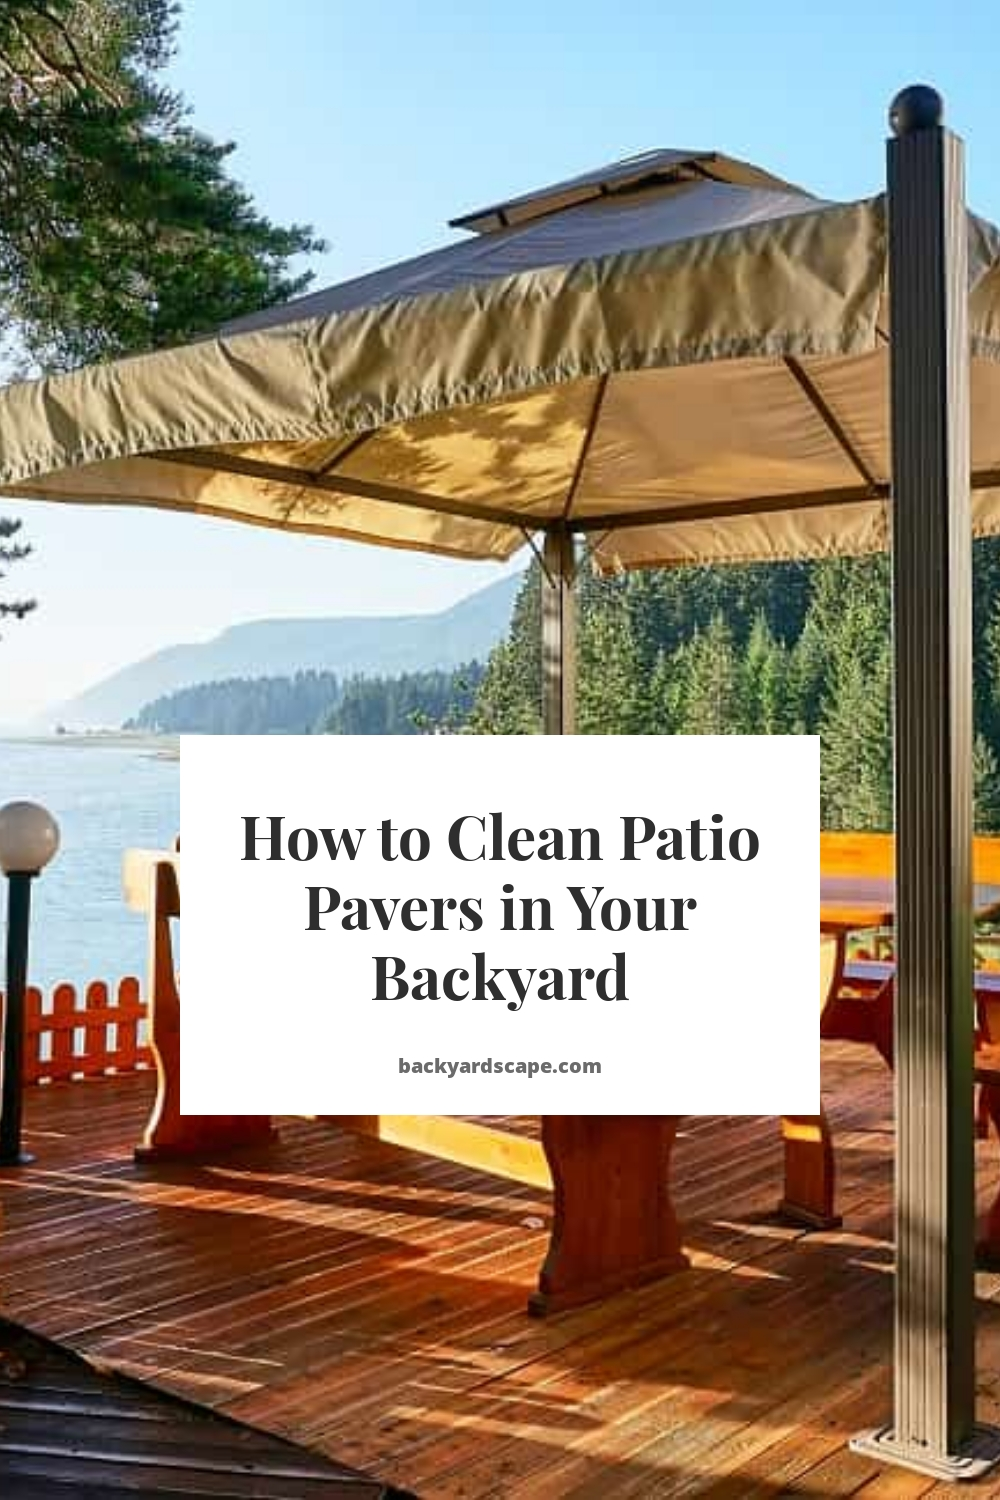 How to Clean Patio Pavers in Your Backyard